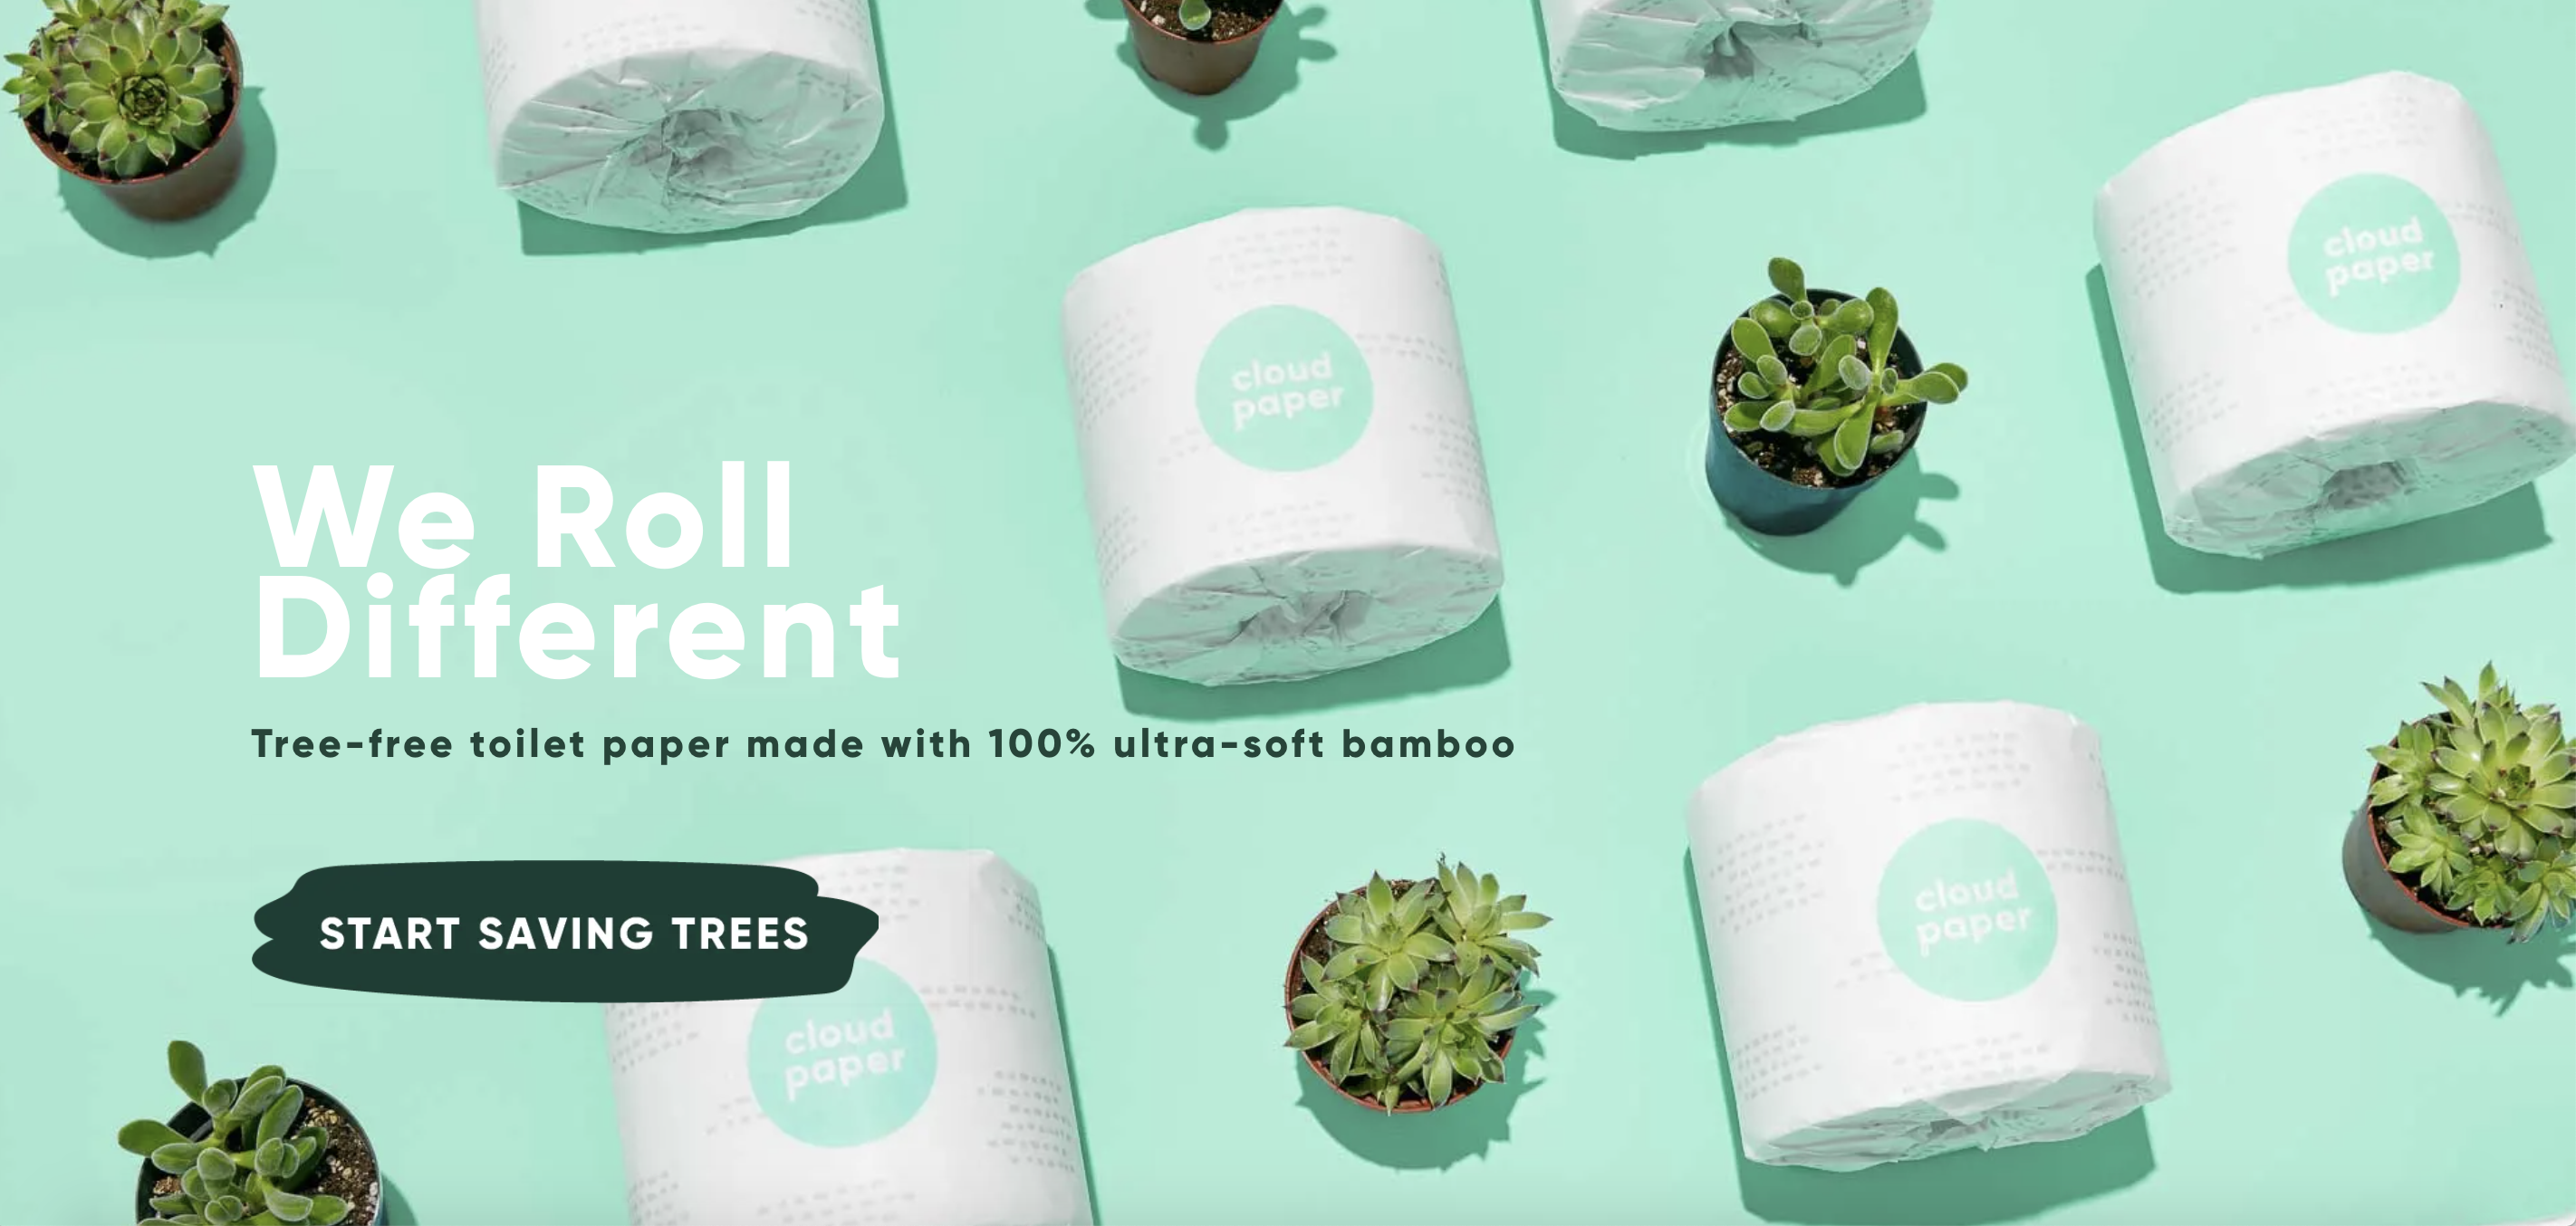 Mark Cuban, Marc Benioff, Robert Downey Jr., Gwyneth Paltrow and Uber CEO Dara Khosrowshahi are investing in toilet paper